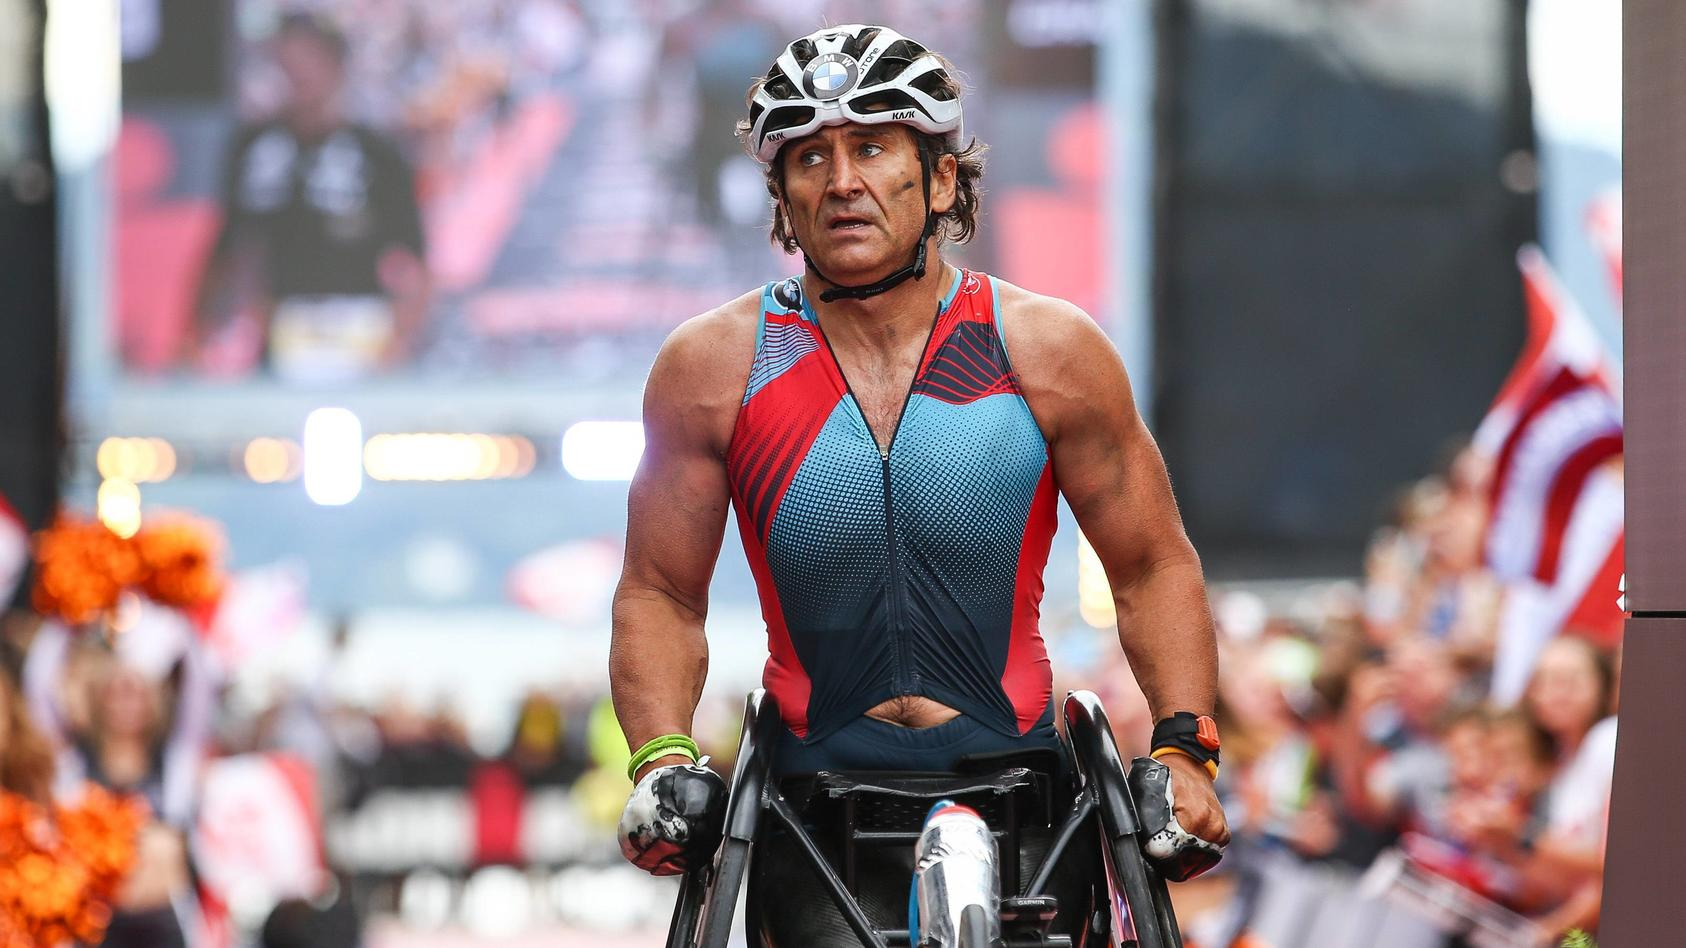 TRIATHLON - Ironman Austria 2017 KLAGENFURT,AUSTRIA,02.JUL.17 - TRIATHLON - Ironman Austria. Image shows Alex Zanardi (